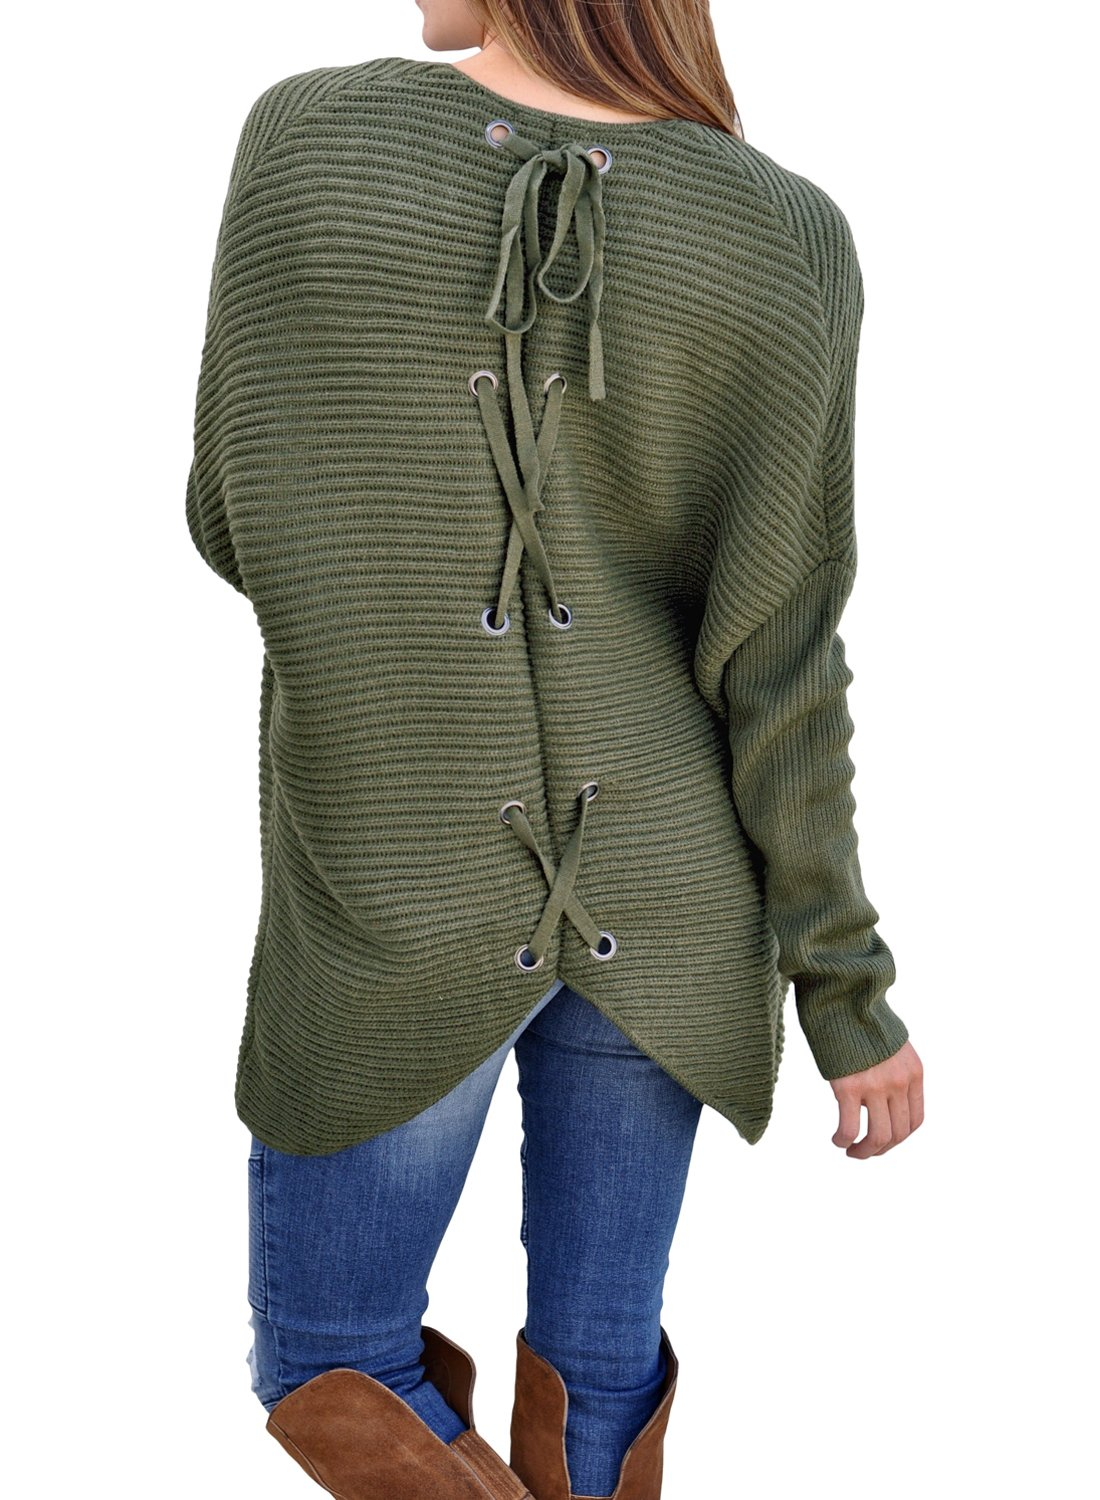 Women's Casual Long Sleeve Open Front Ribbed Knit Cardigan Sweaters Loose Lace up Back Oversized Outerwear Coat Plus Size Army Green L 12 14